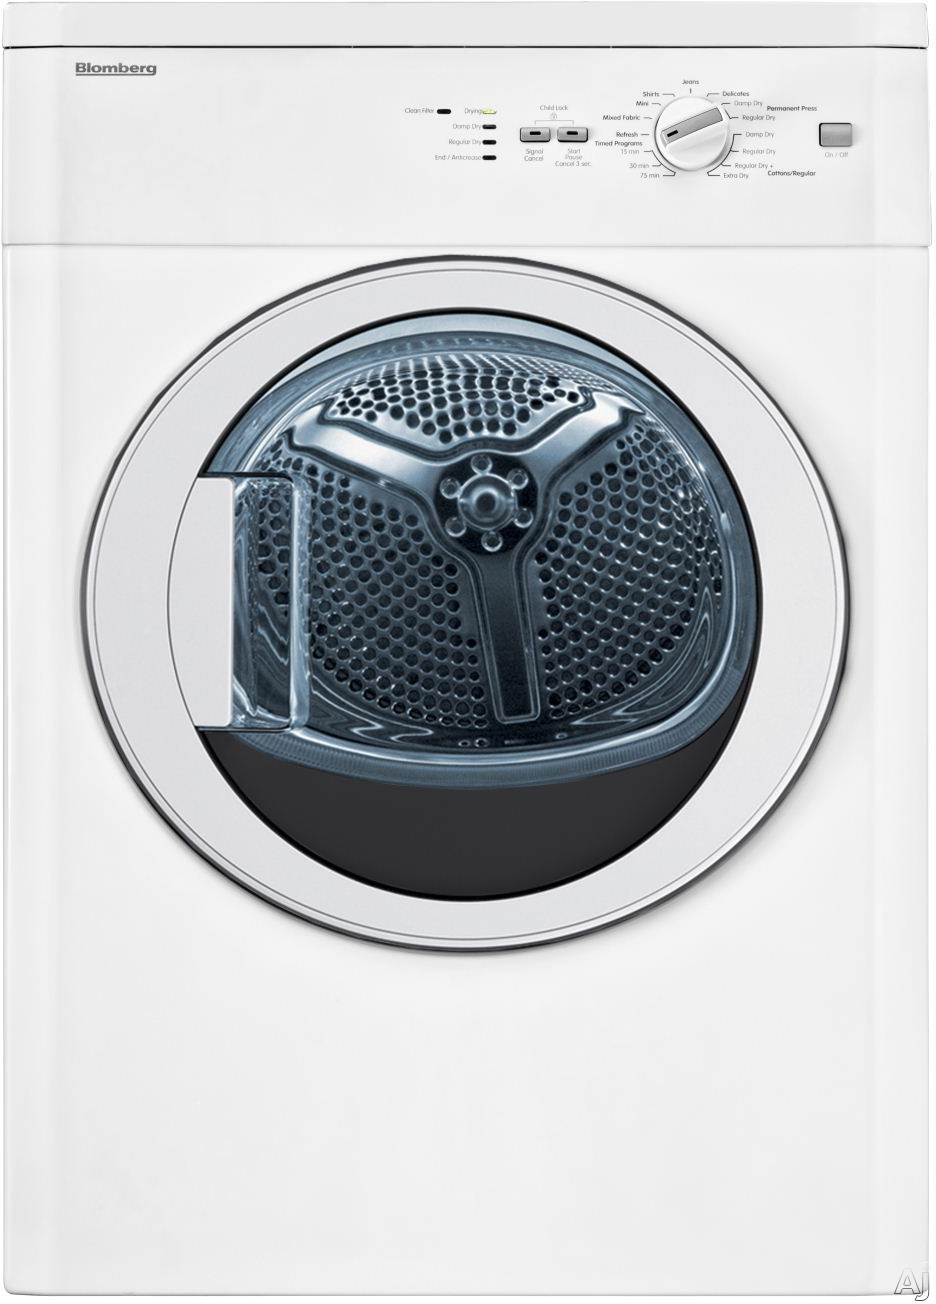 Blomberg DV17542 24 Inch Electric Dryer with Sensor Drying ENERGY STAR Clean Filter Light 16 Cycles and 3.67 cu. ft. Stainless Steel Drum